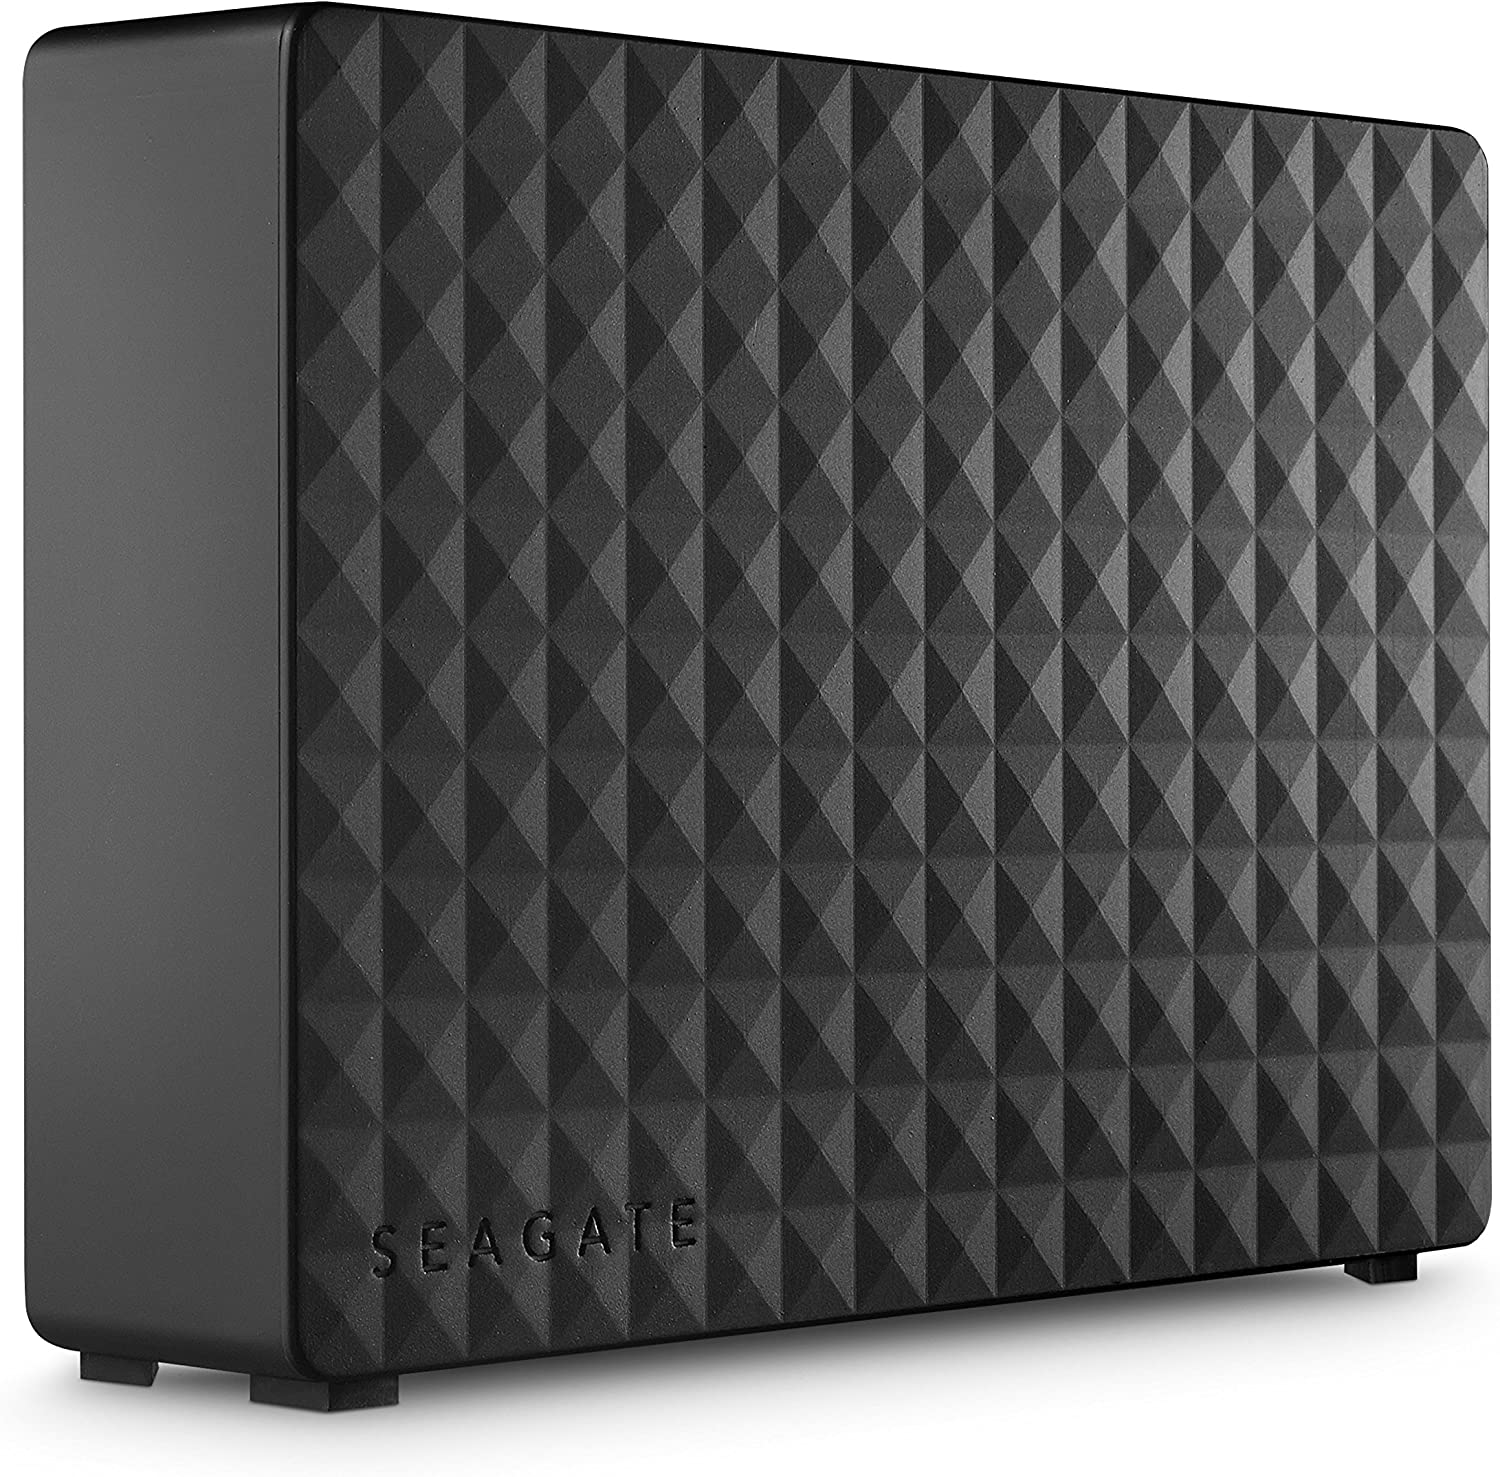 Seagate Expansion Desktop, 6 TB, Disco duro externo 3.5